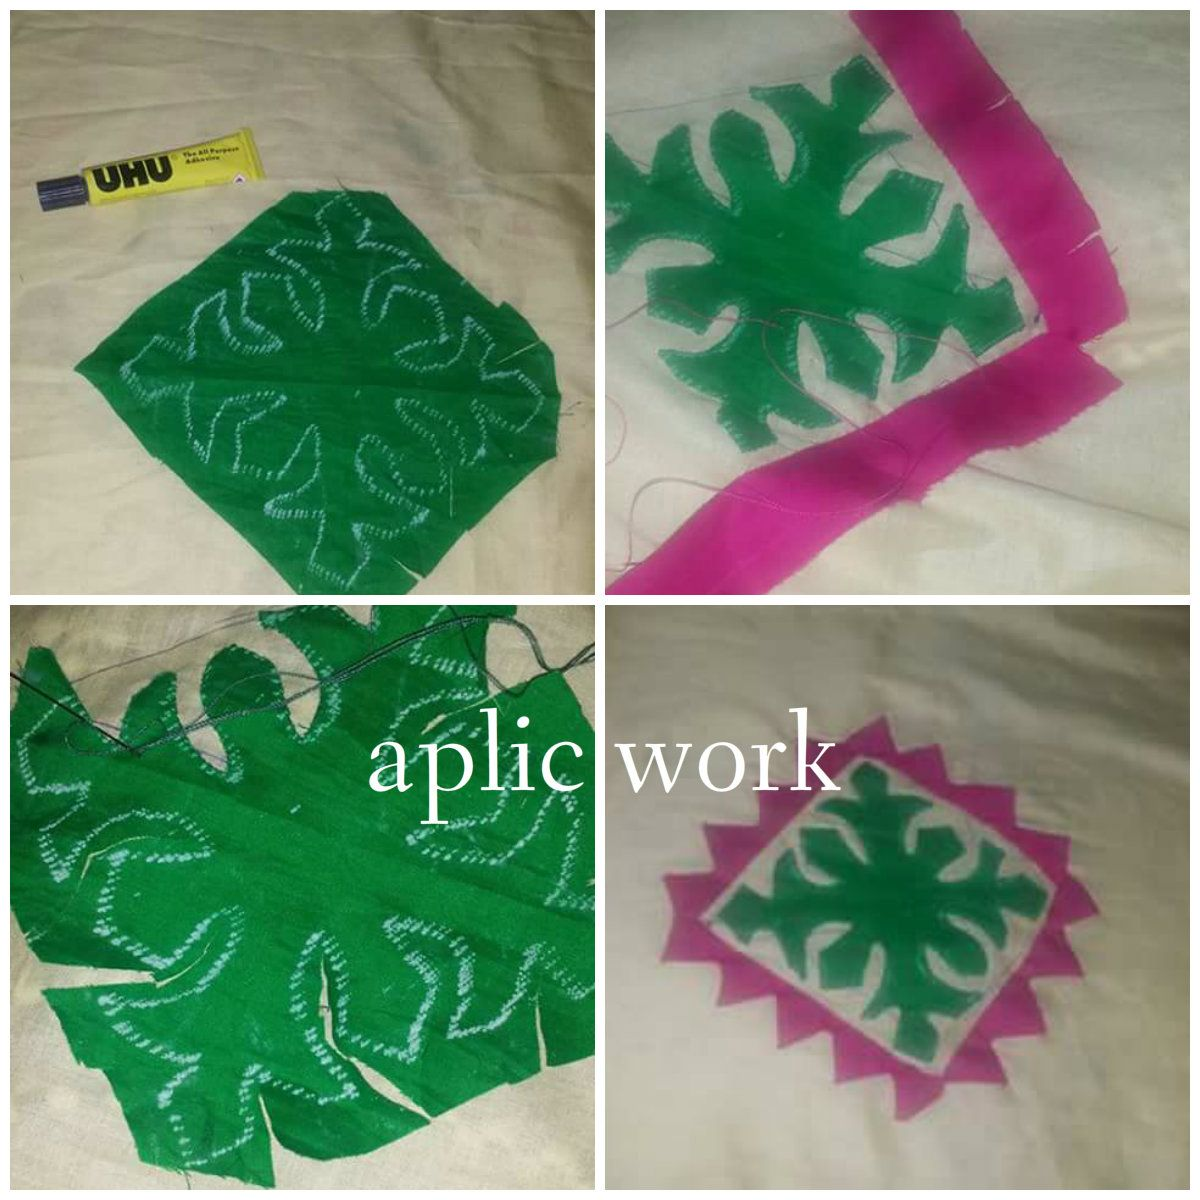 Ribbon Work Bed Sheets Designs - Aplic work